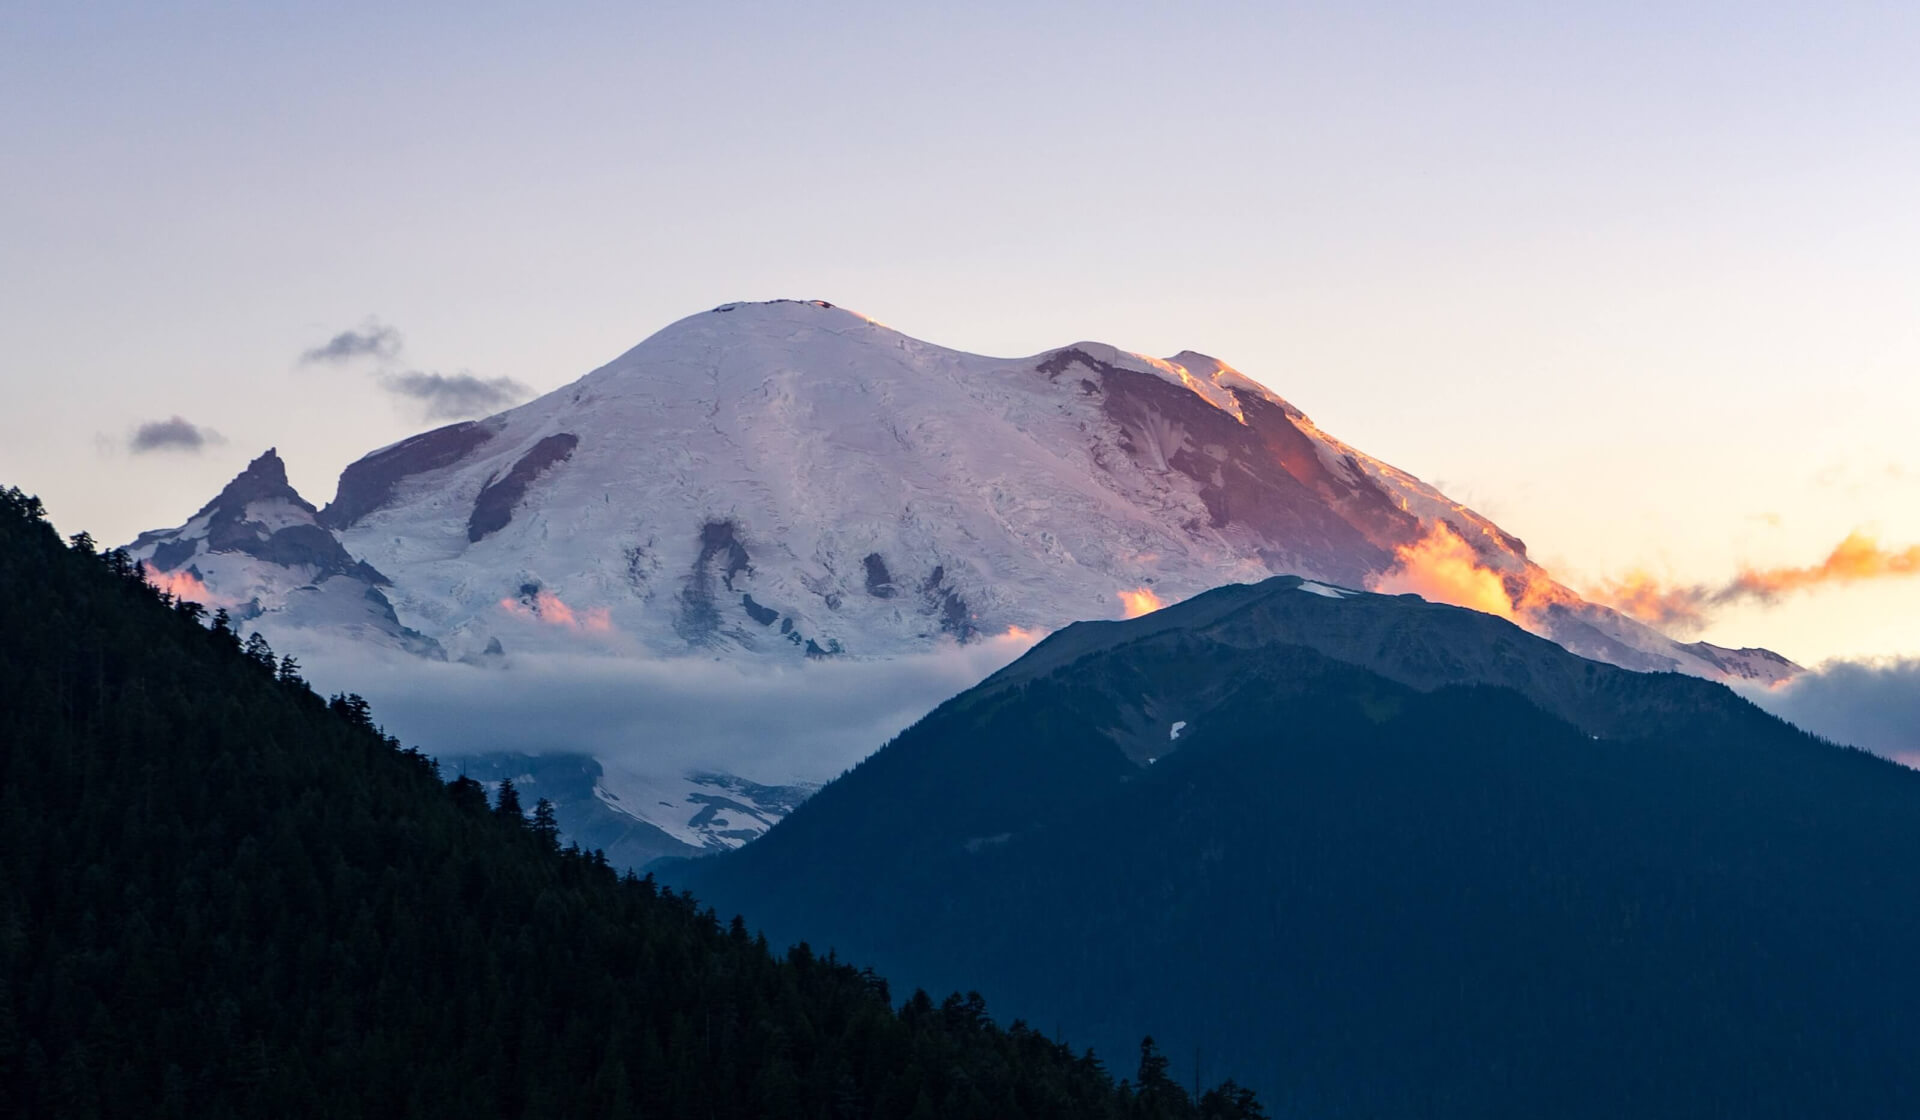 Snow-capped Mount Rainier volcanic mountain in Washington, USA